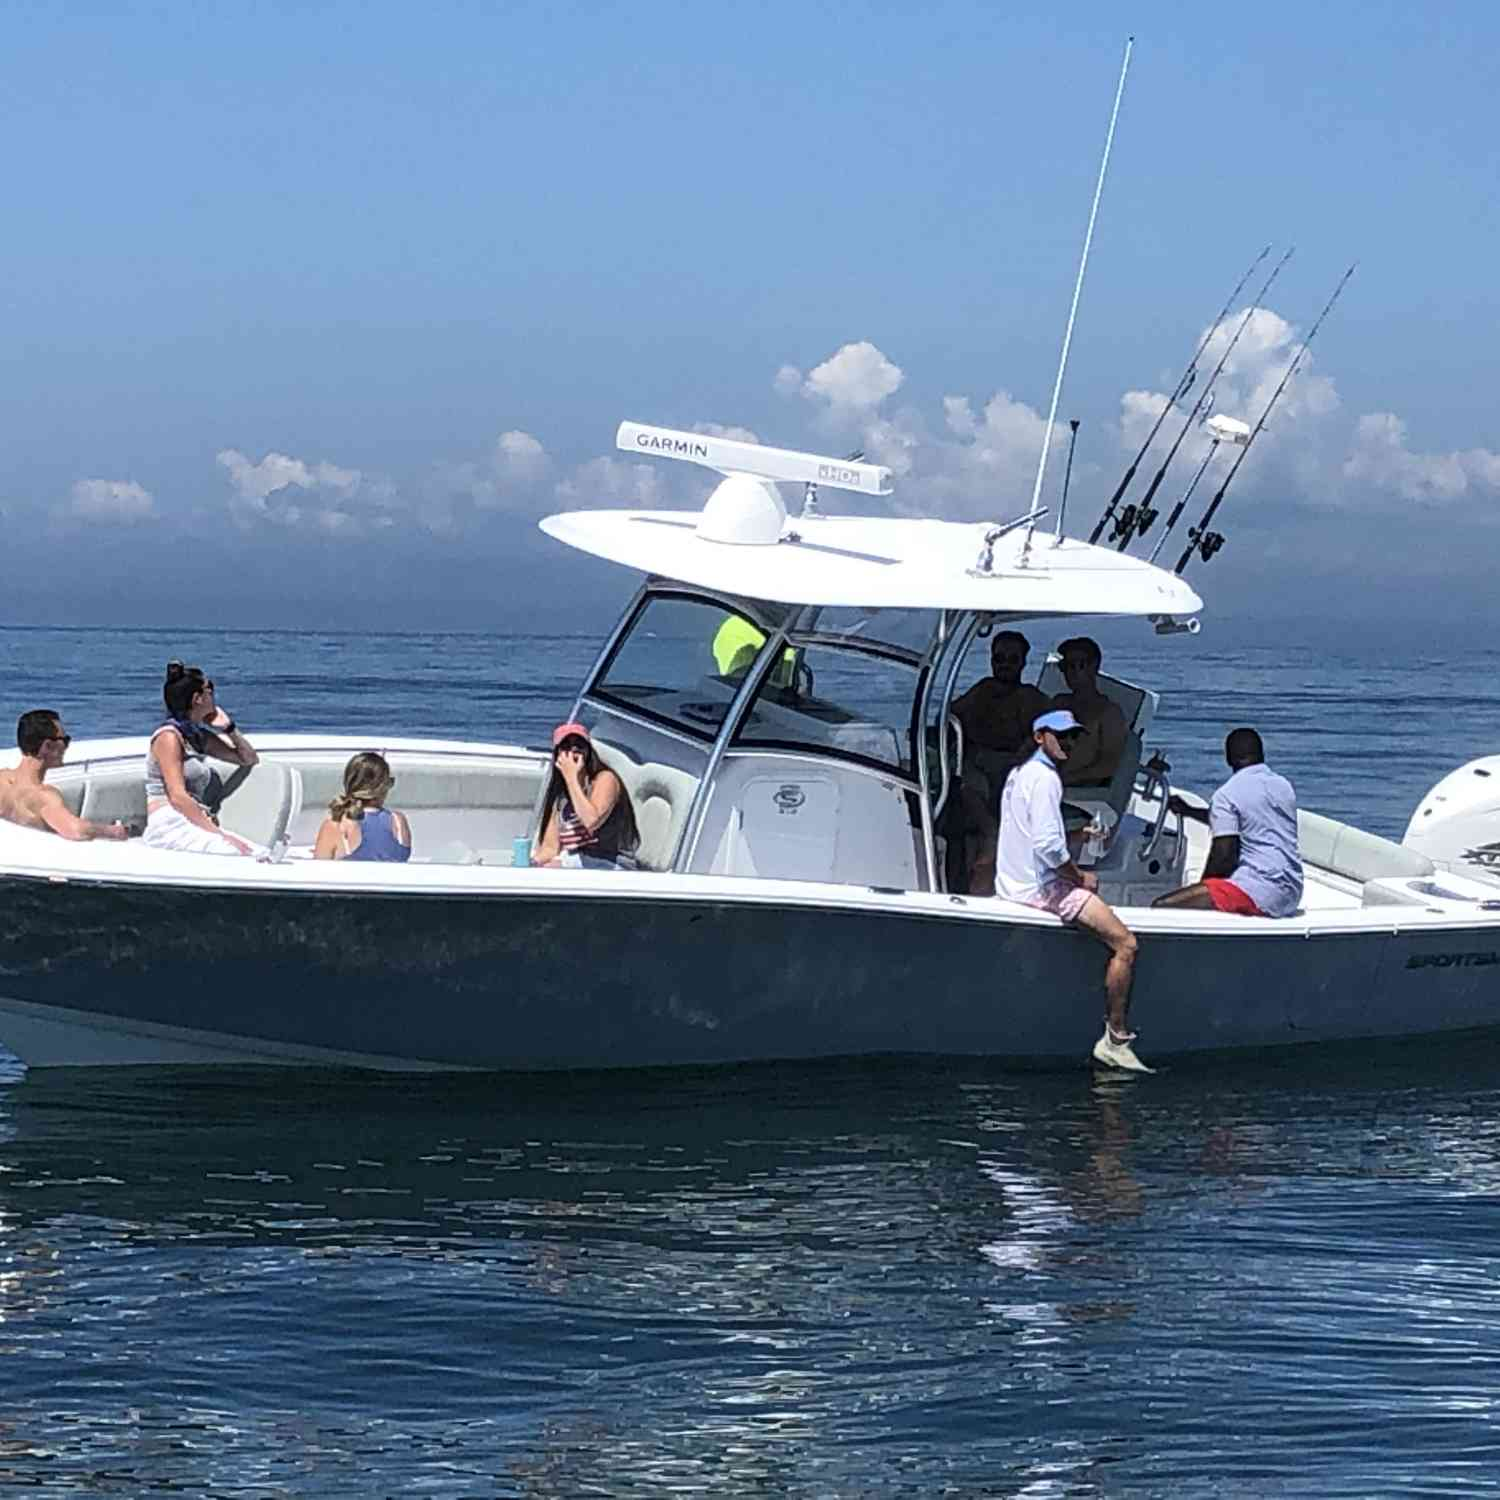 Title: Headed to the beach - On board their Sportsman Open 312 Center Console - Location: Robinsons hole. Participating in the Photo Contest #SportsmanAugust2020